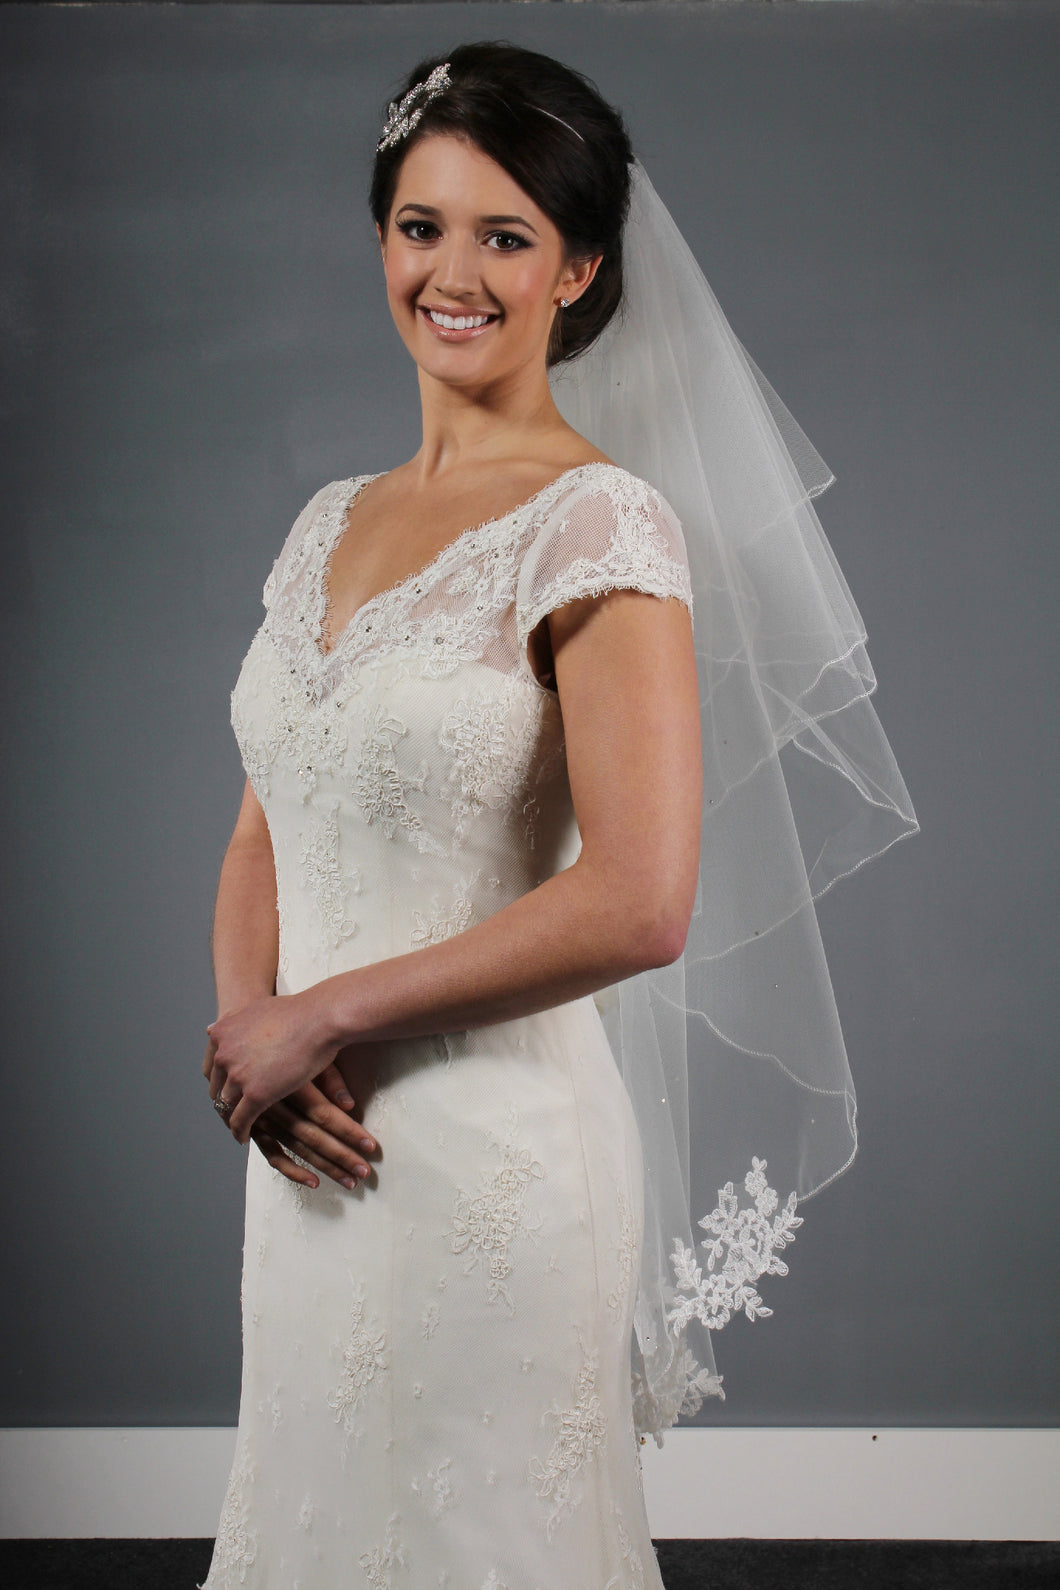 Bridal Apparel Corded Lace Appliqué Veil || CGC346B